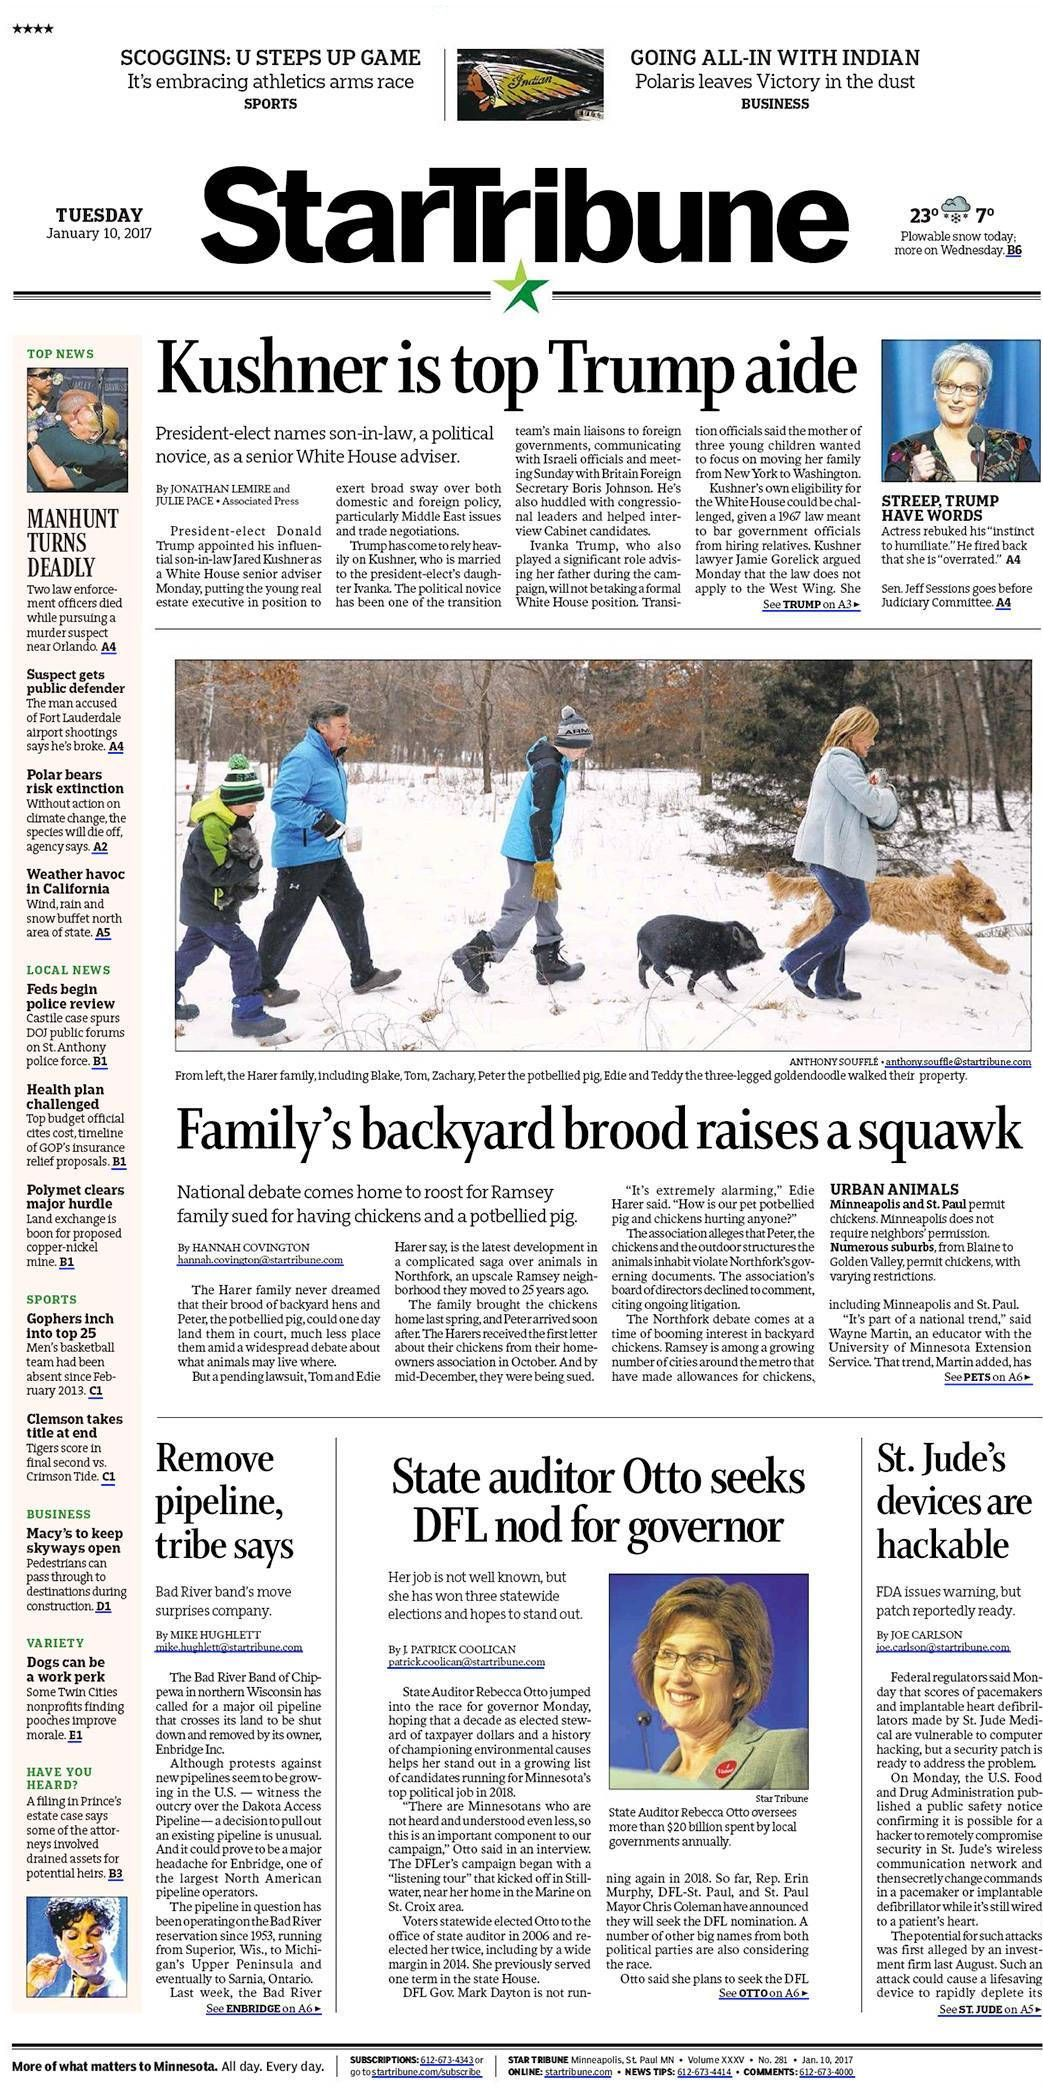 Star Tribune 10 01 2017 front page headline stories Newspaper Front Pages Top